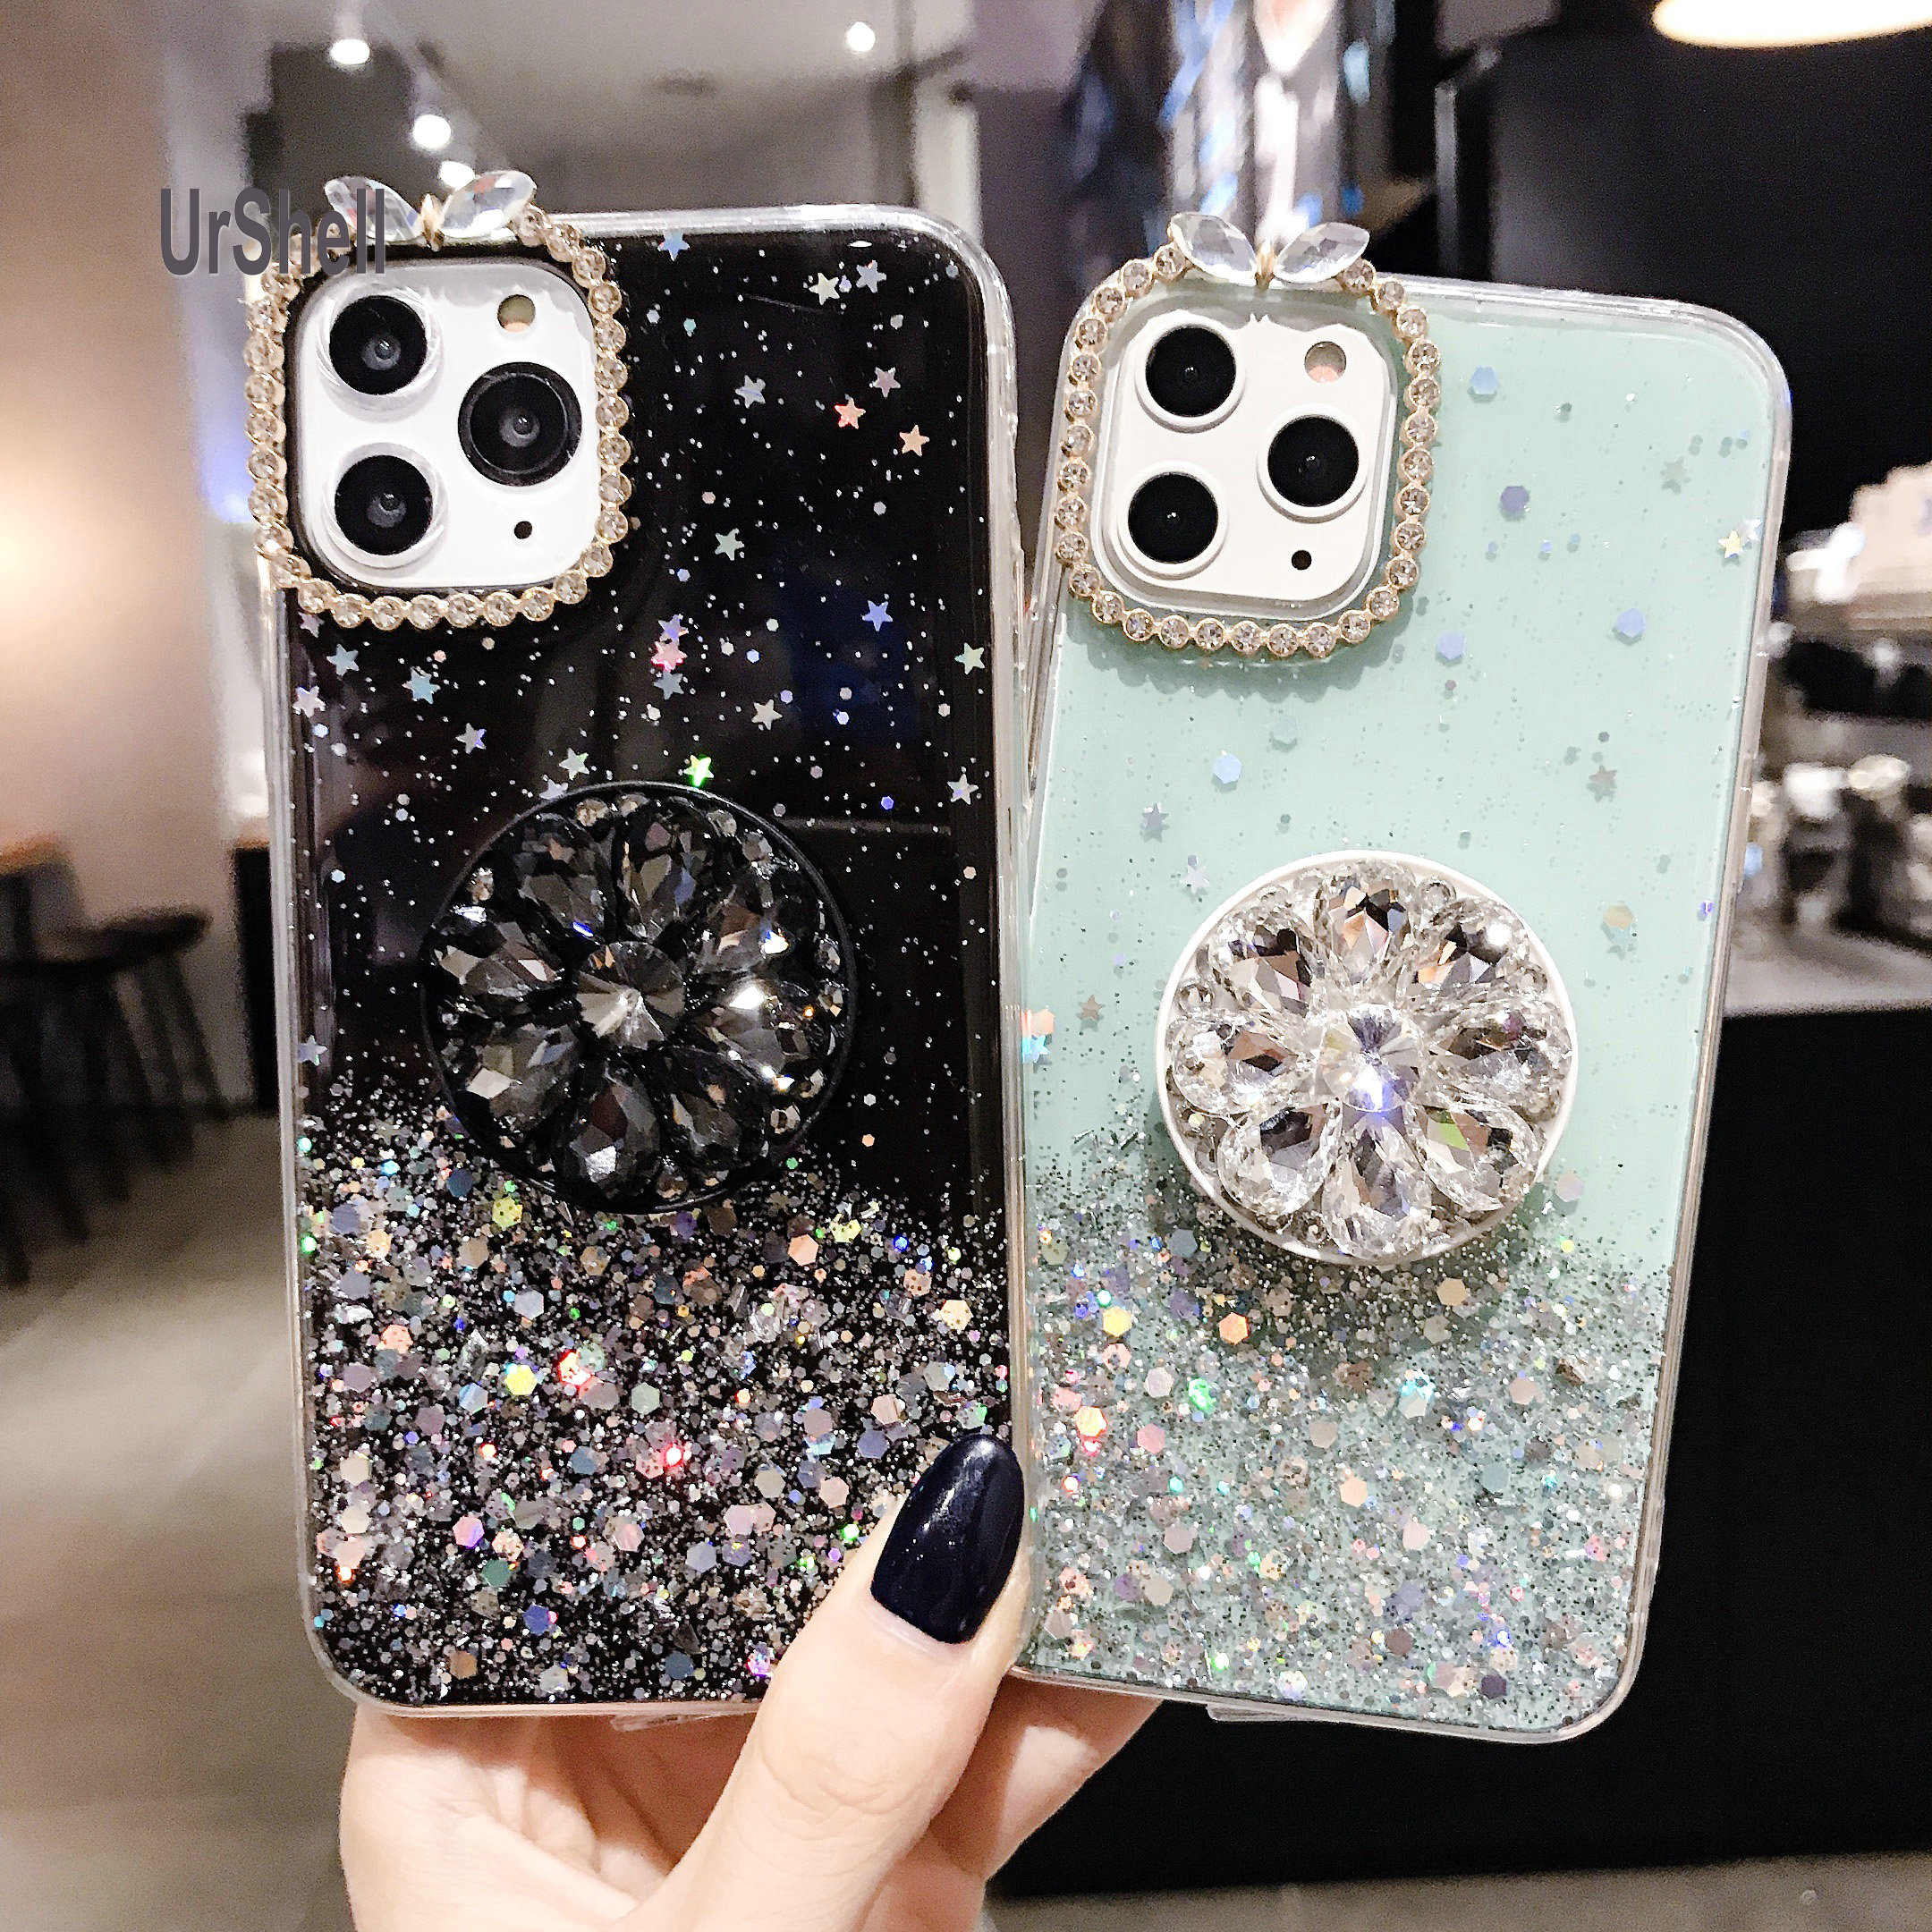 Diamond Case For <font><b>Samsung</b></font> S20 Ultra S10 <font><b>S10E</b></font> S9 Note10 9 8 Plus A51 A71 A91 A70S A30S A50S A90 A20S A40S M30 Ring Holder Case image